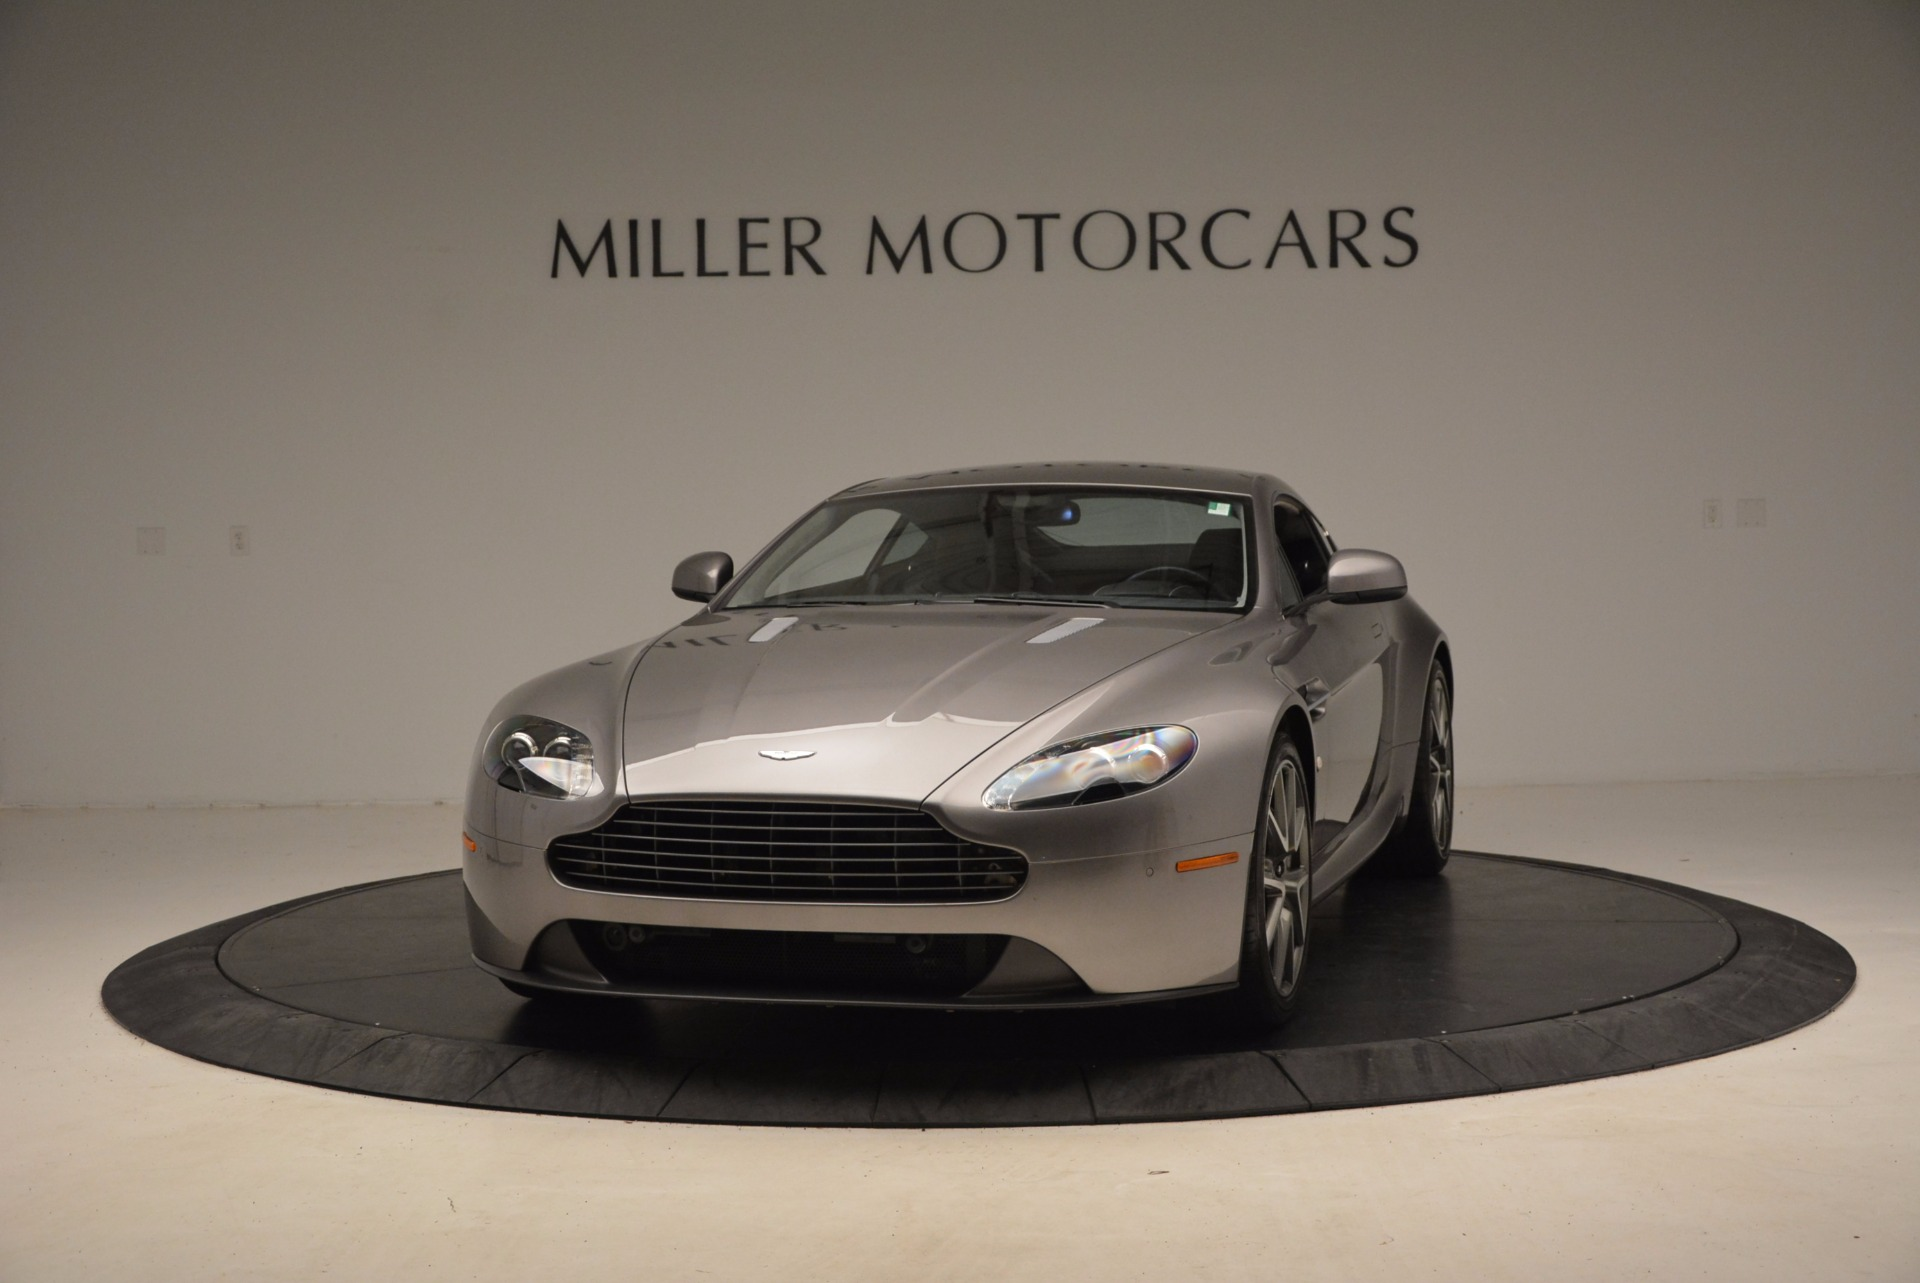 Used 2012 Aston Martin V8 Vantage for sale Sold at McLaren Greenwich in Greenwich CT 06830 1